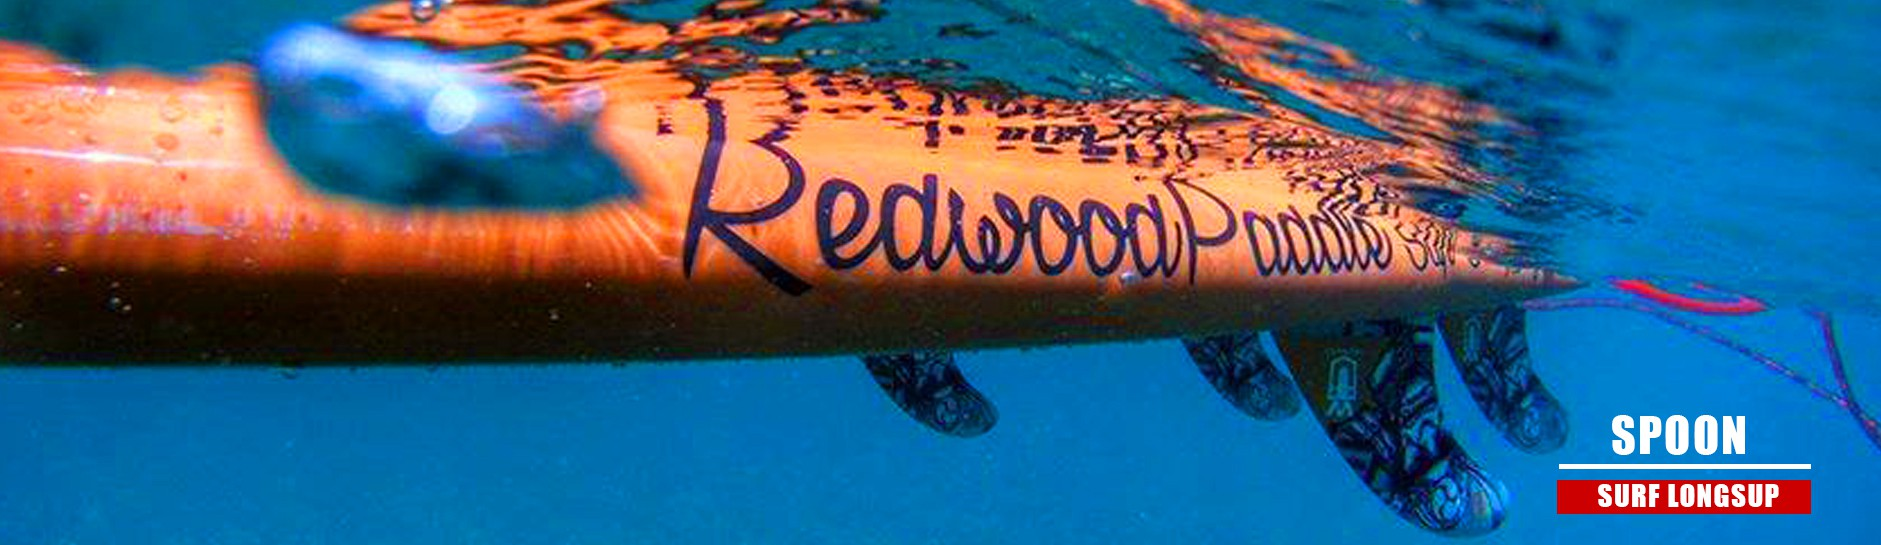 Spoon Replica Redwoodpaddle Longsup surf